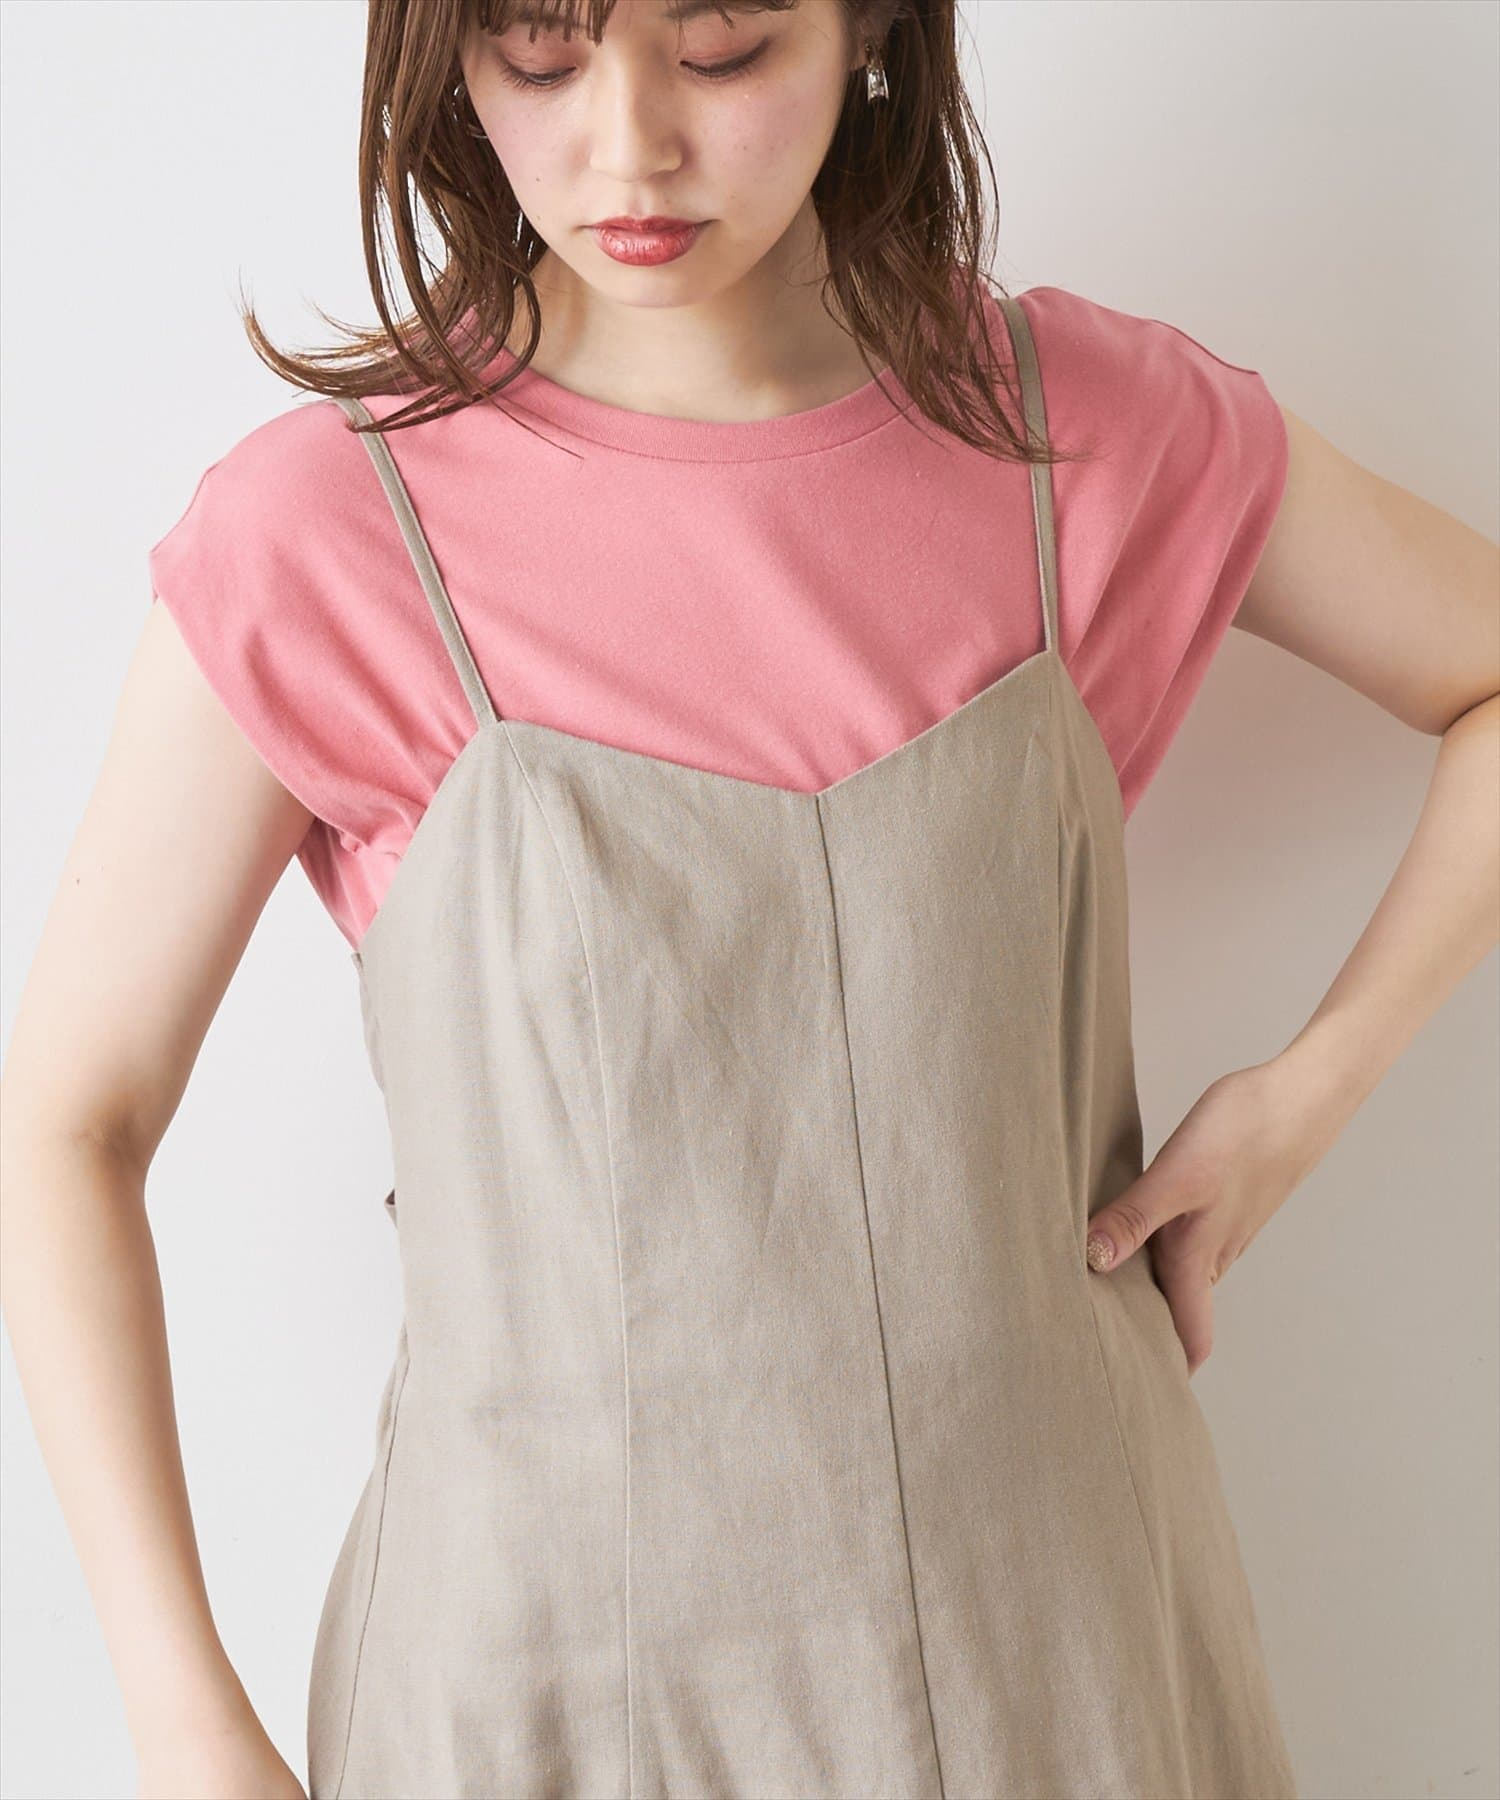 natural couture(ナチュラルクチュール) レディース 袖口タック厚手ノースリT ピンク